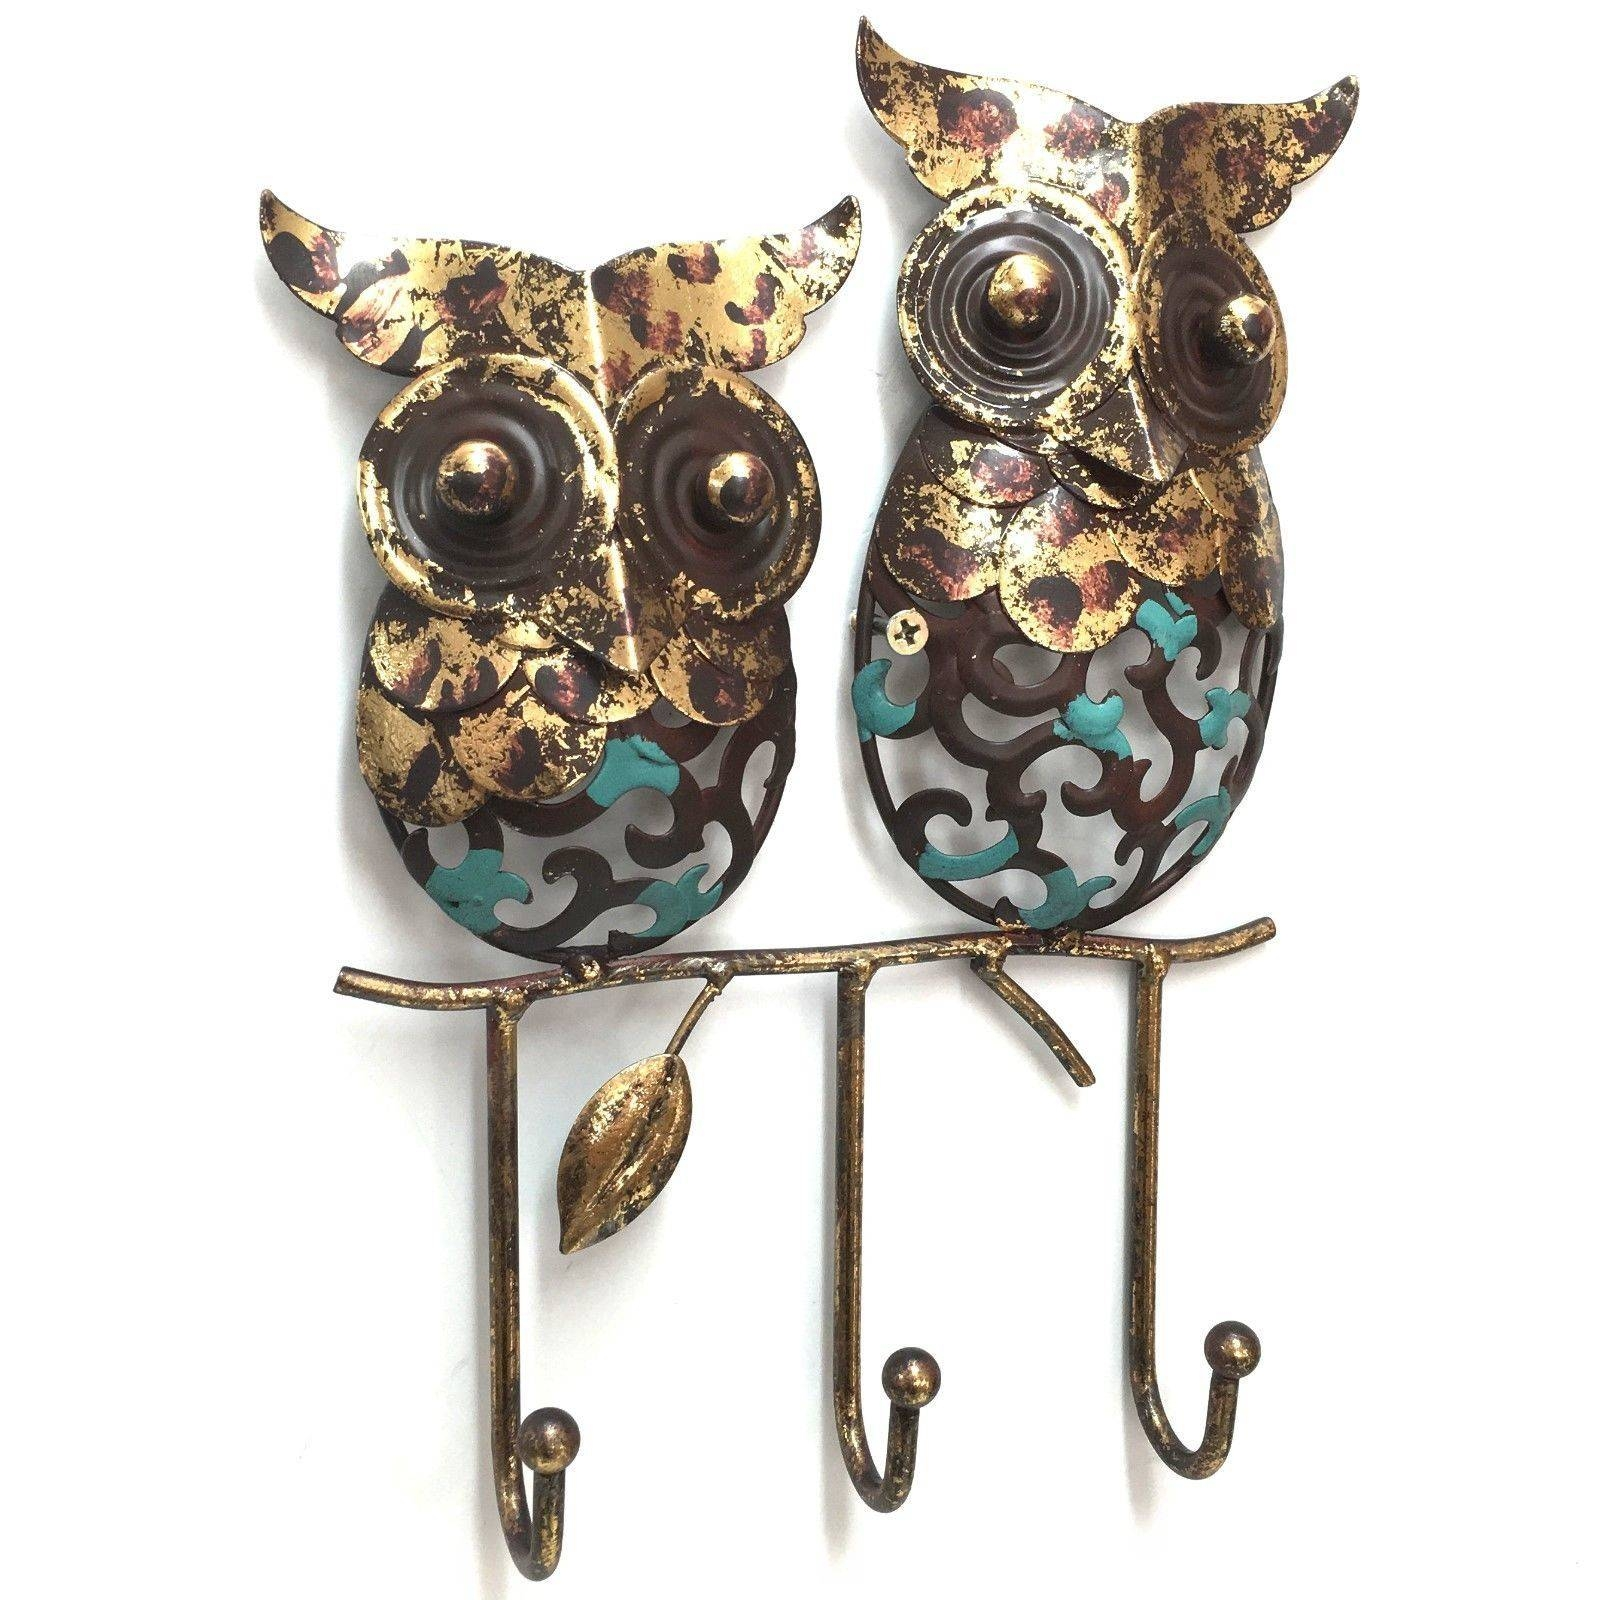 Owl Metal Wall Art Hooks Intended For Most Up To Date Owls Metal Wall Art (View 16 of 20)